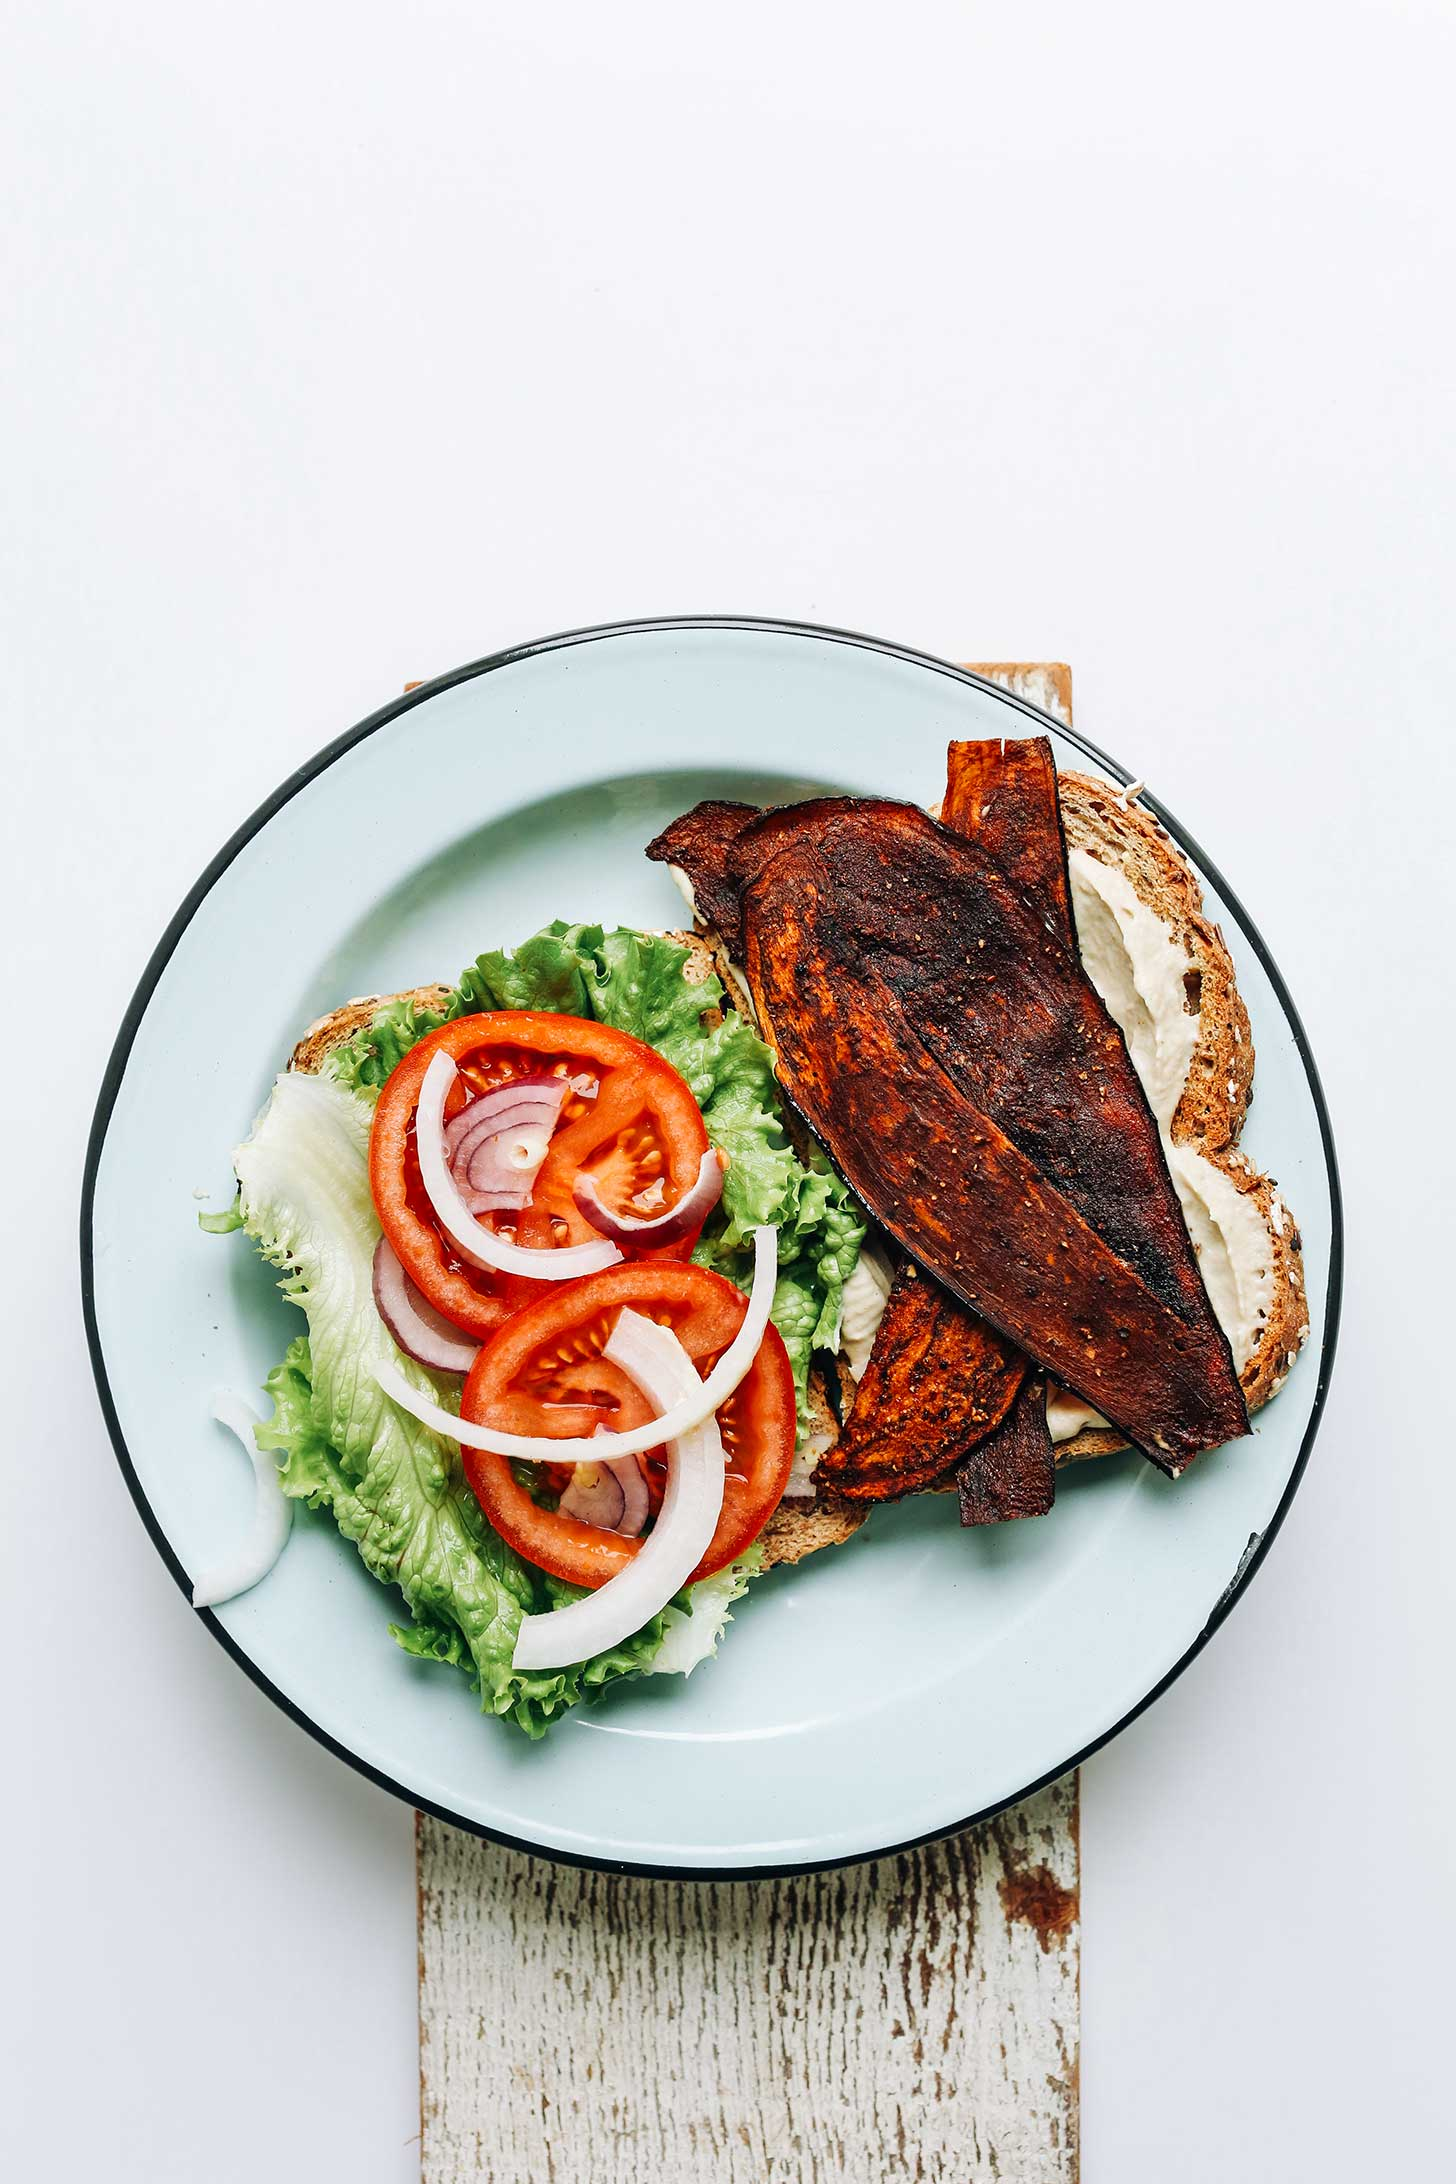 A plate with eggplant bacon, oil-free vegan mayo, sliced tomato, onion, and lettuce for a Vegan BLT